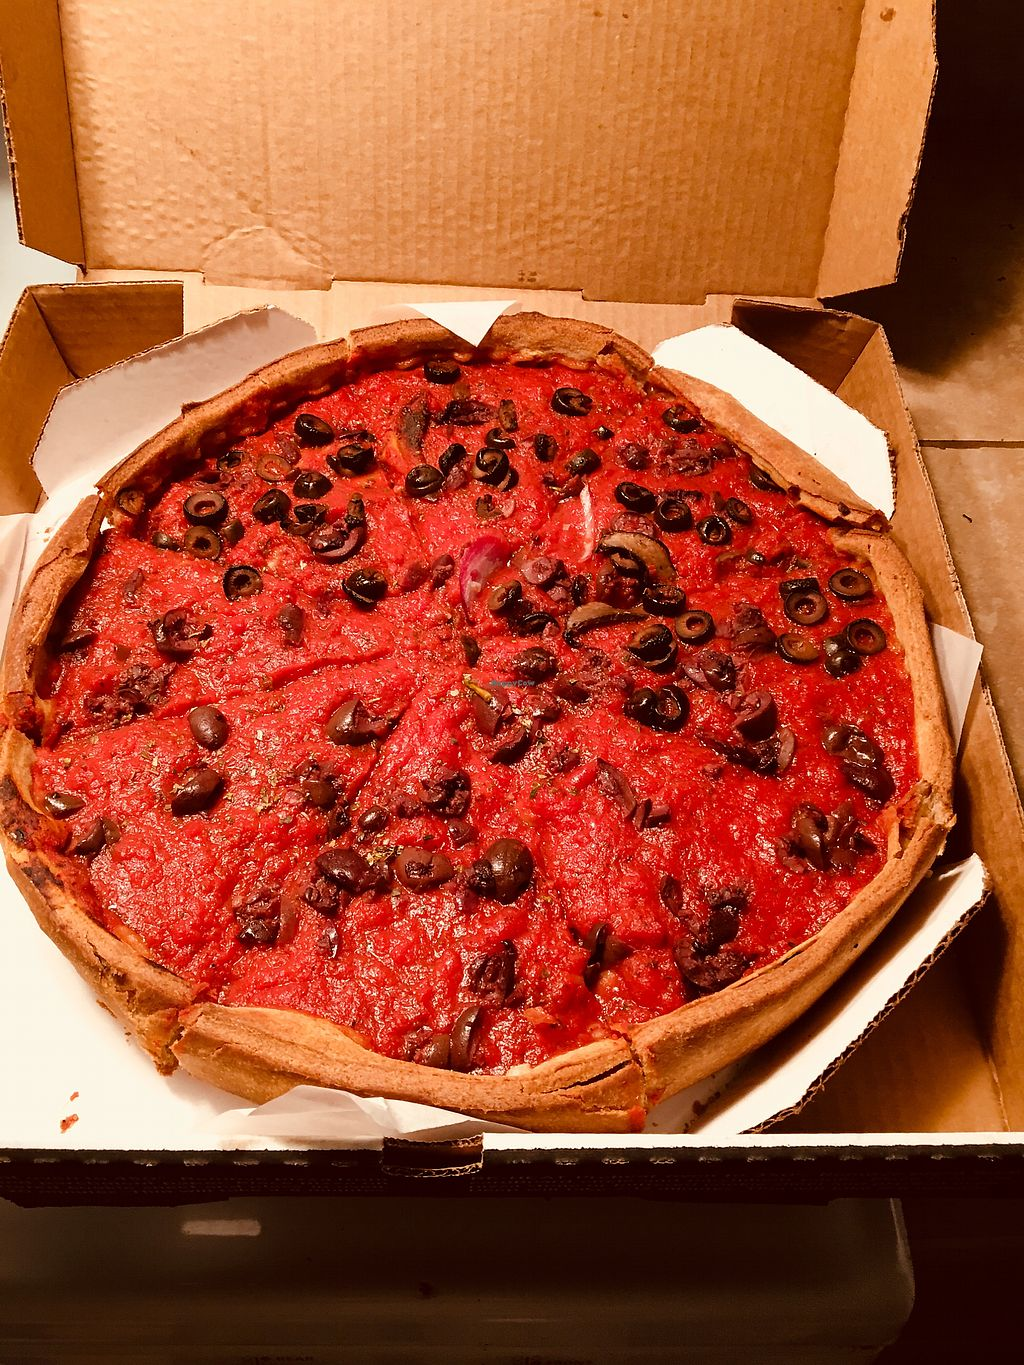 """Photo of Patxi's Pizza  by <a href=""""/members/profile/Clean%26Green"""">Clean&Green</a> <br/>Vegan pizza extra olives  <br/> April 18, 2018  - <a href='/contact/abuse/image/63171/387480'>Report</a>"""